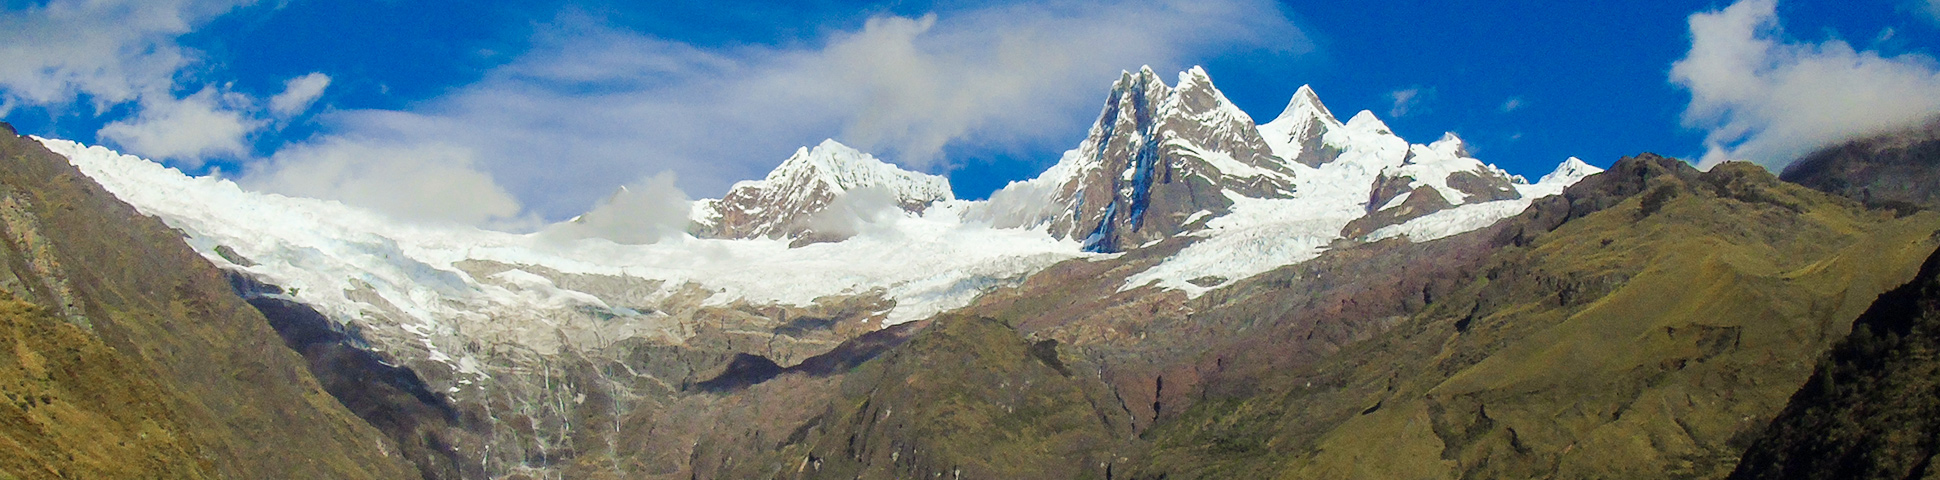 Panoramic view of Apamayo to Pomabamba trek in Peru